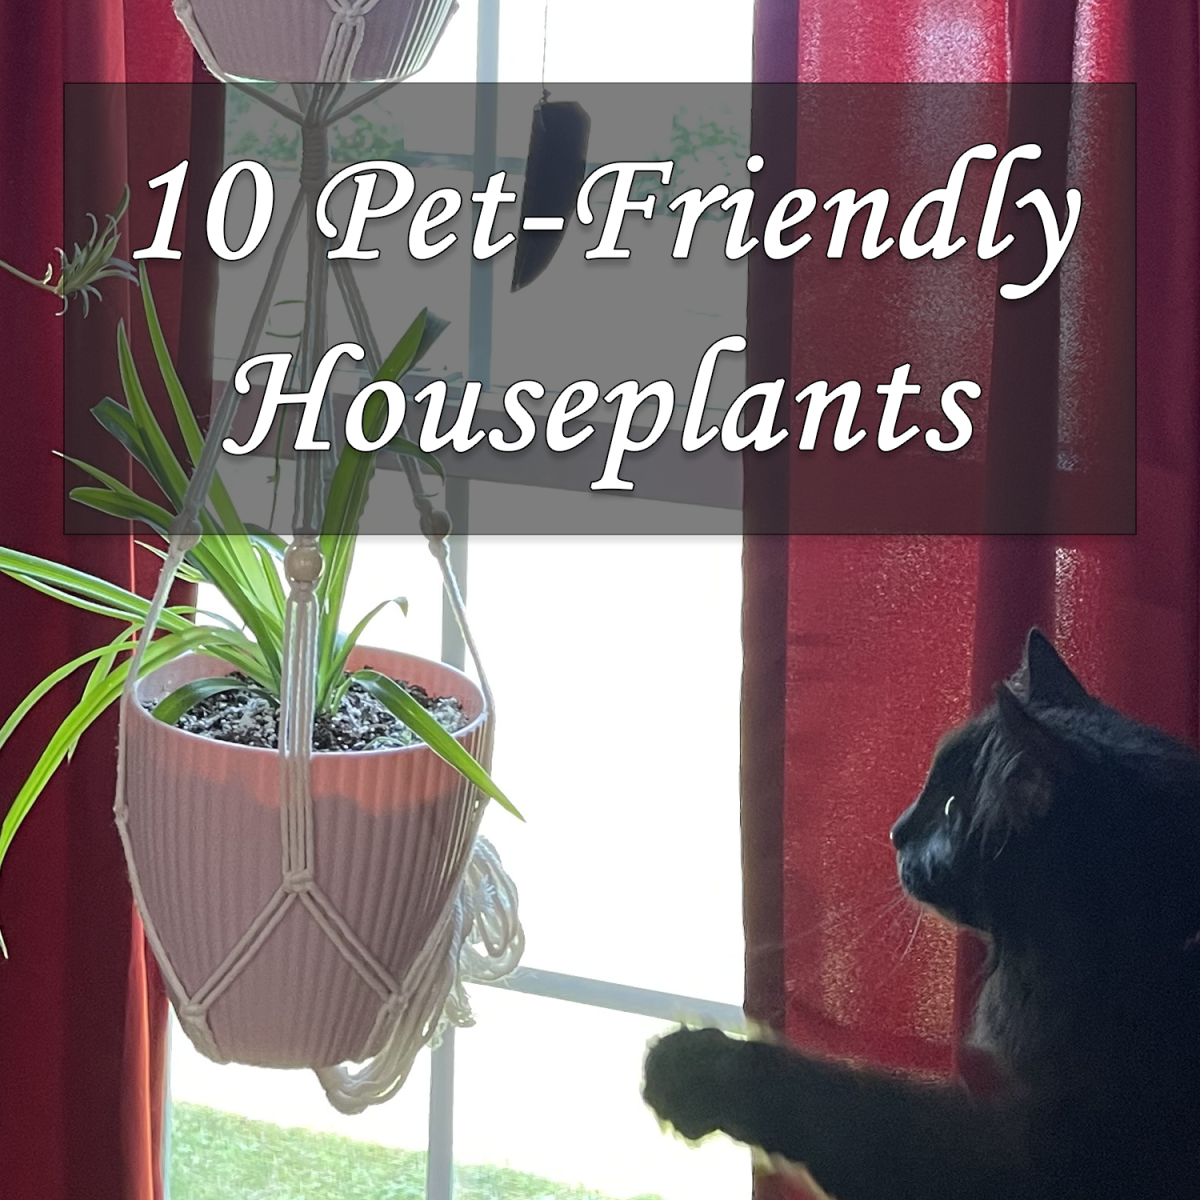 10 Pet-Friendly Houseplants that are Safe for Cats and Dogs